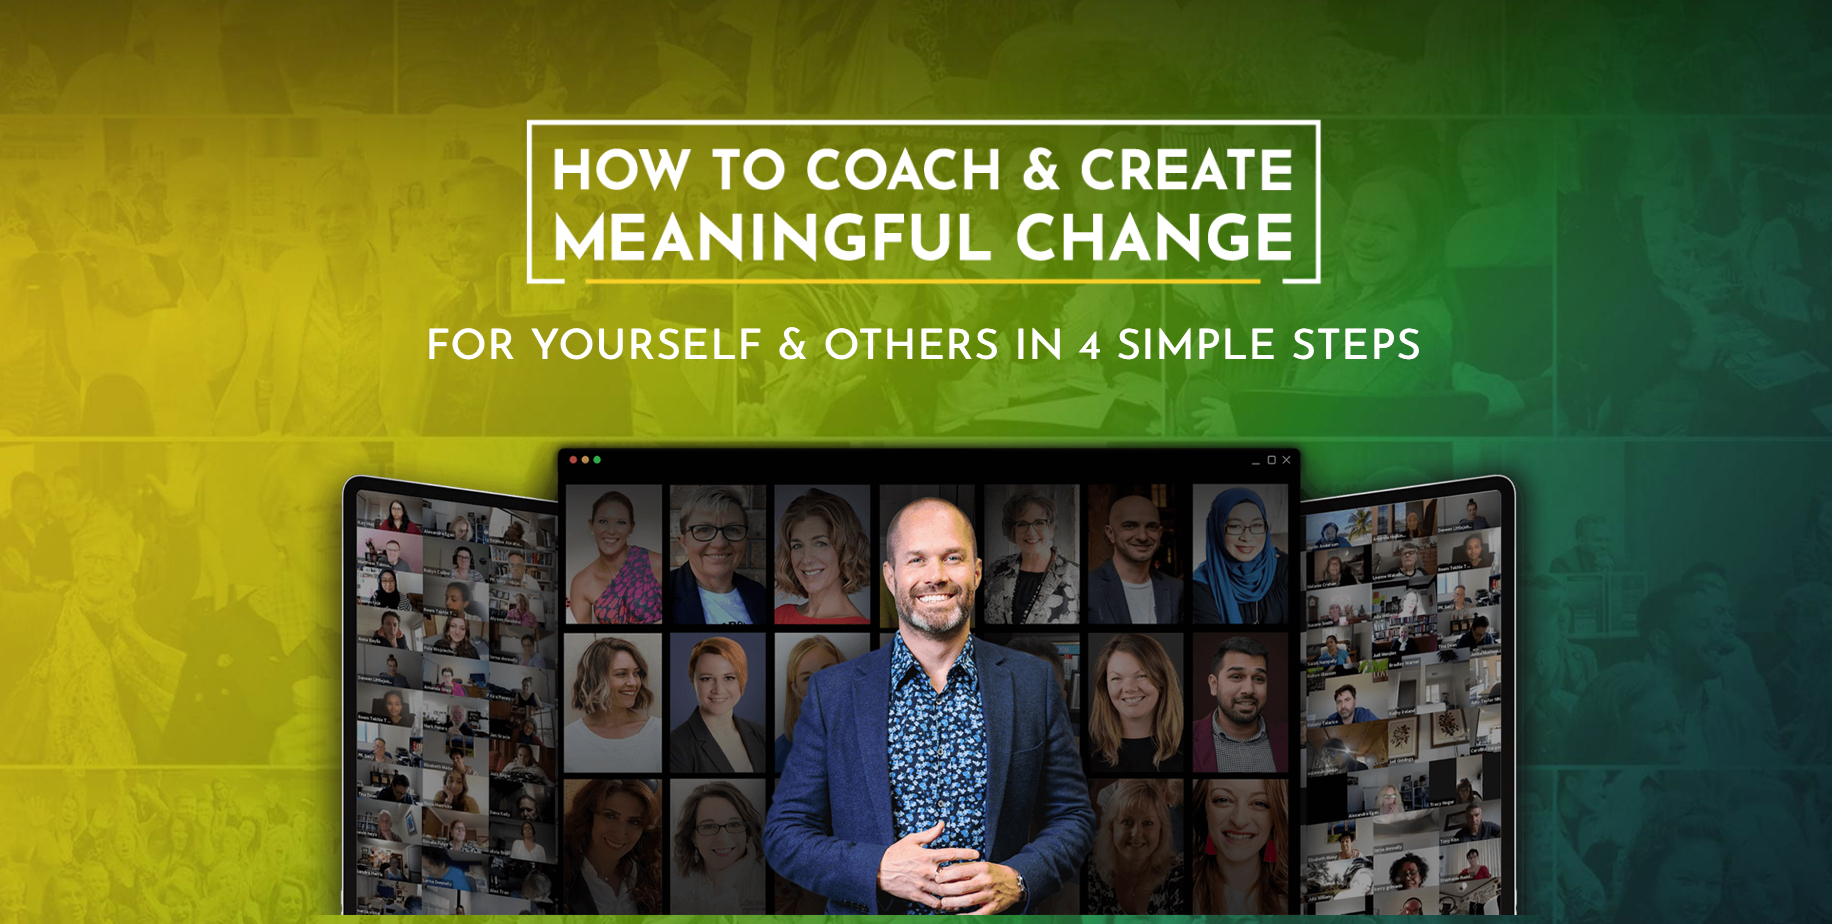 How to coach & create meaningful change